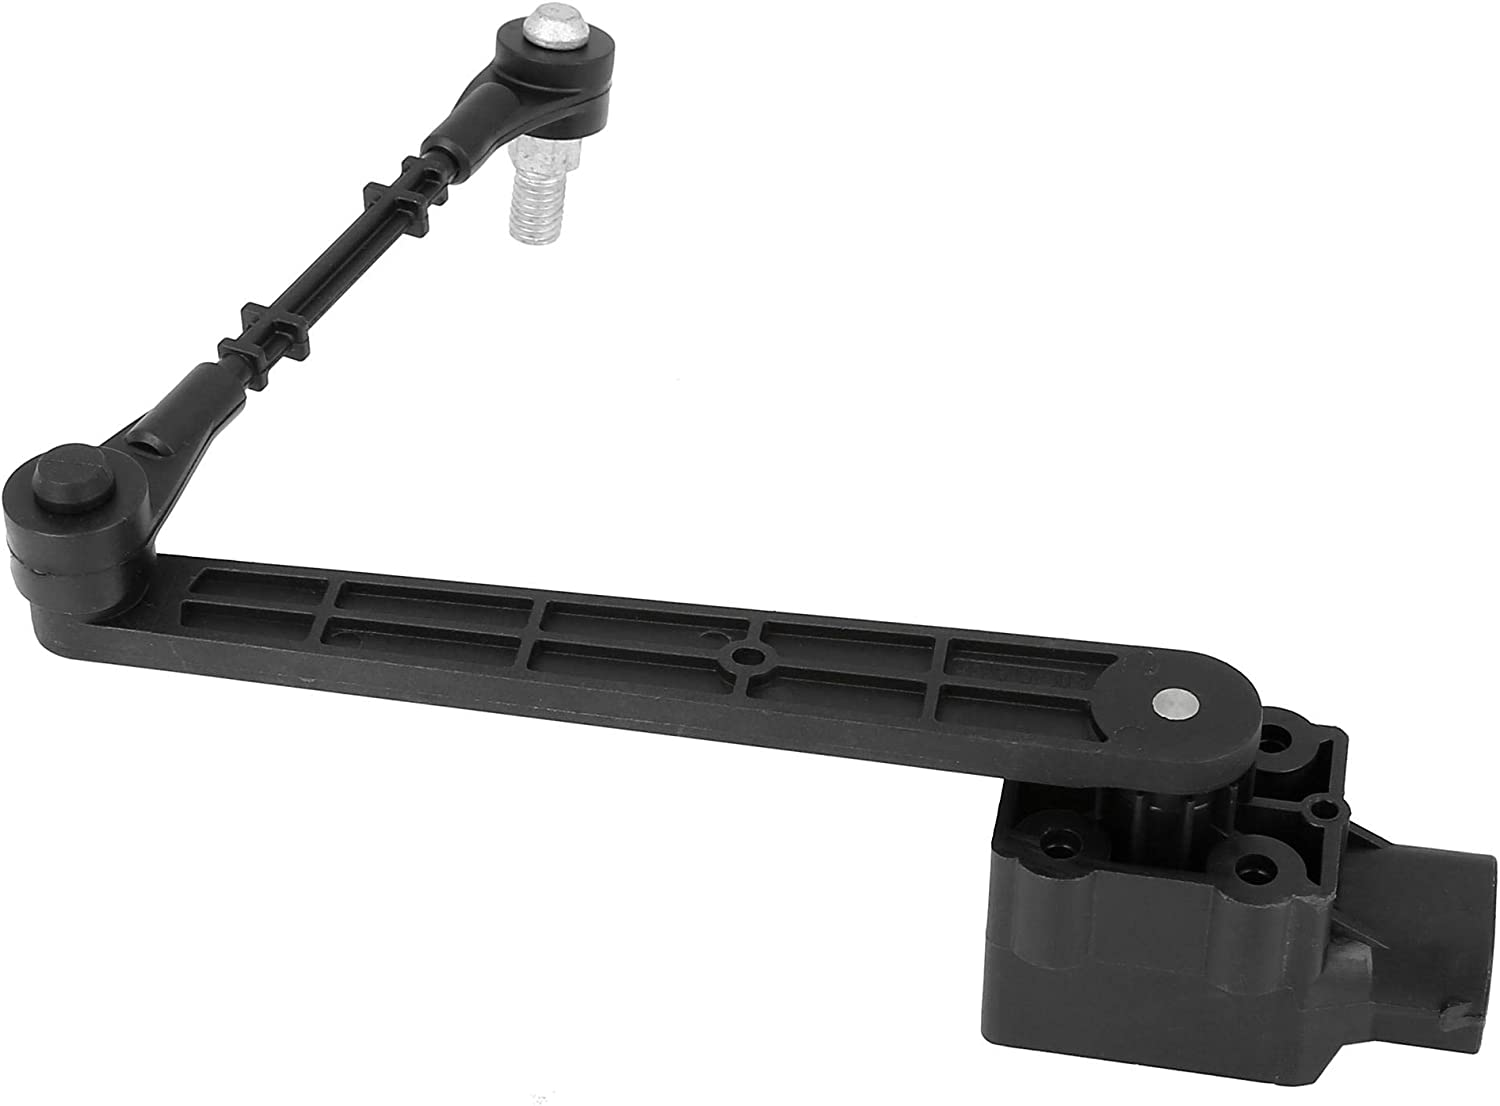 X AUTOHAUX RQH500441 Rear Left Right Suspension Height Level Sensor for Land Rover Range Rover 2004-2009